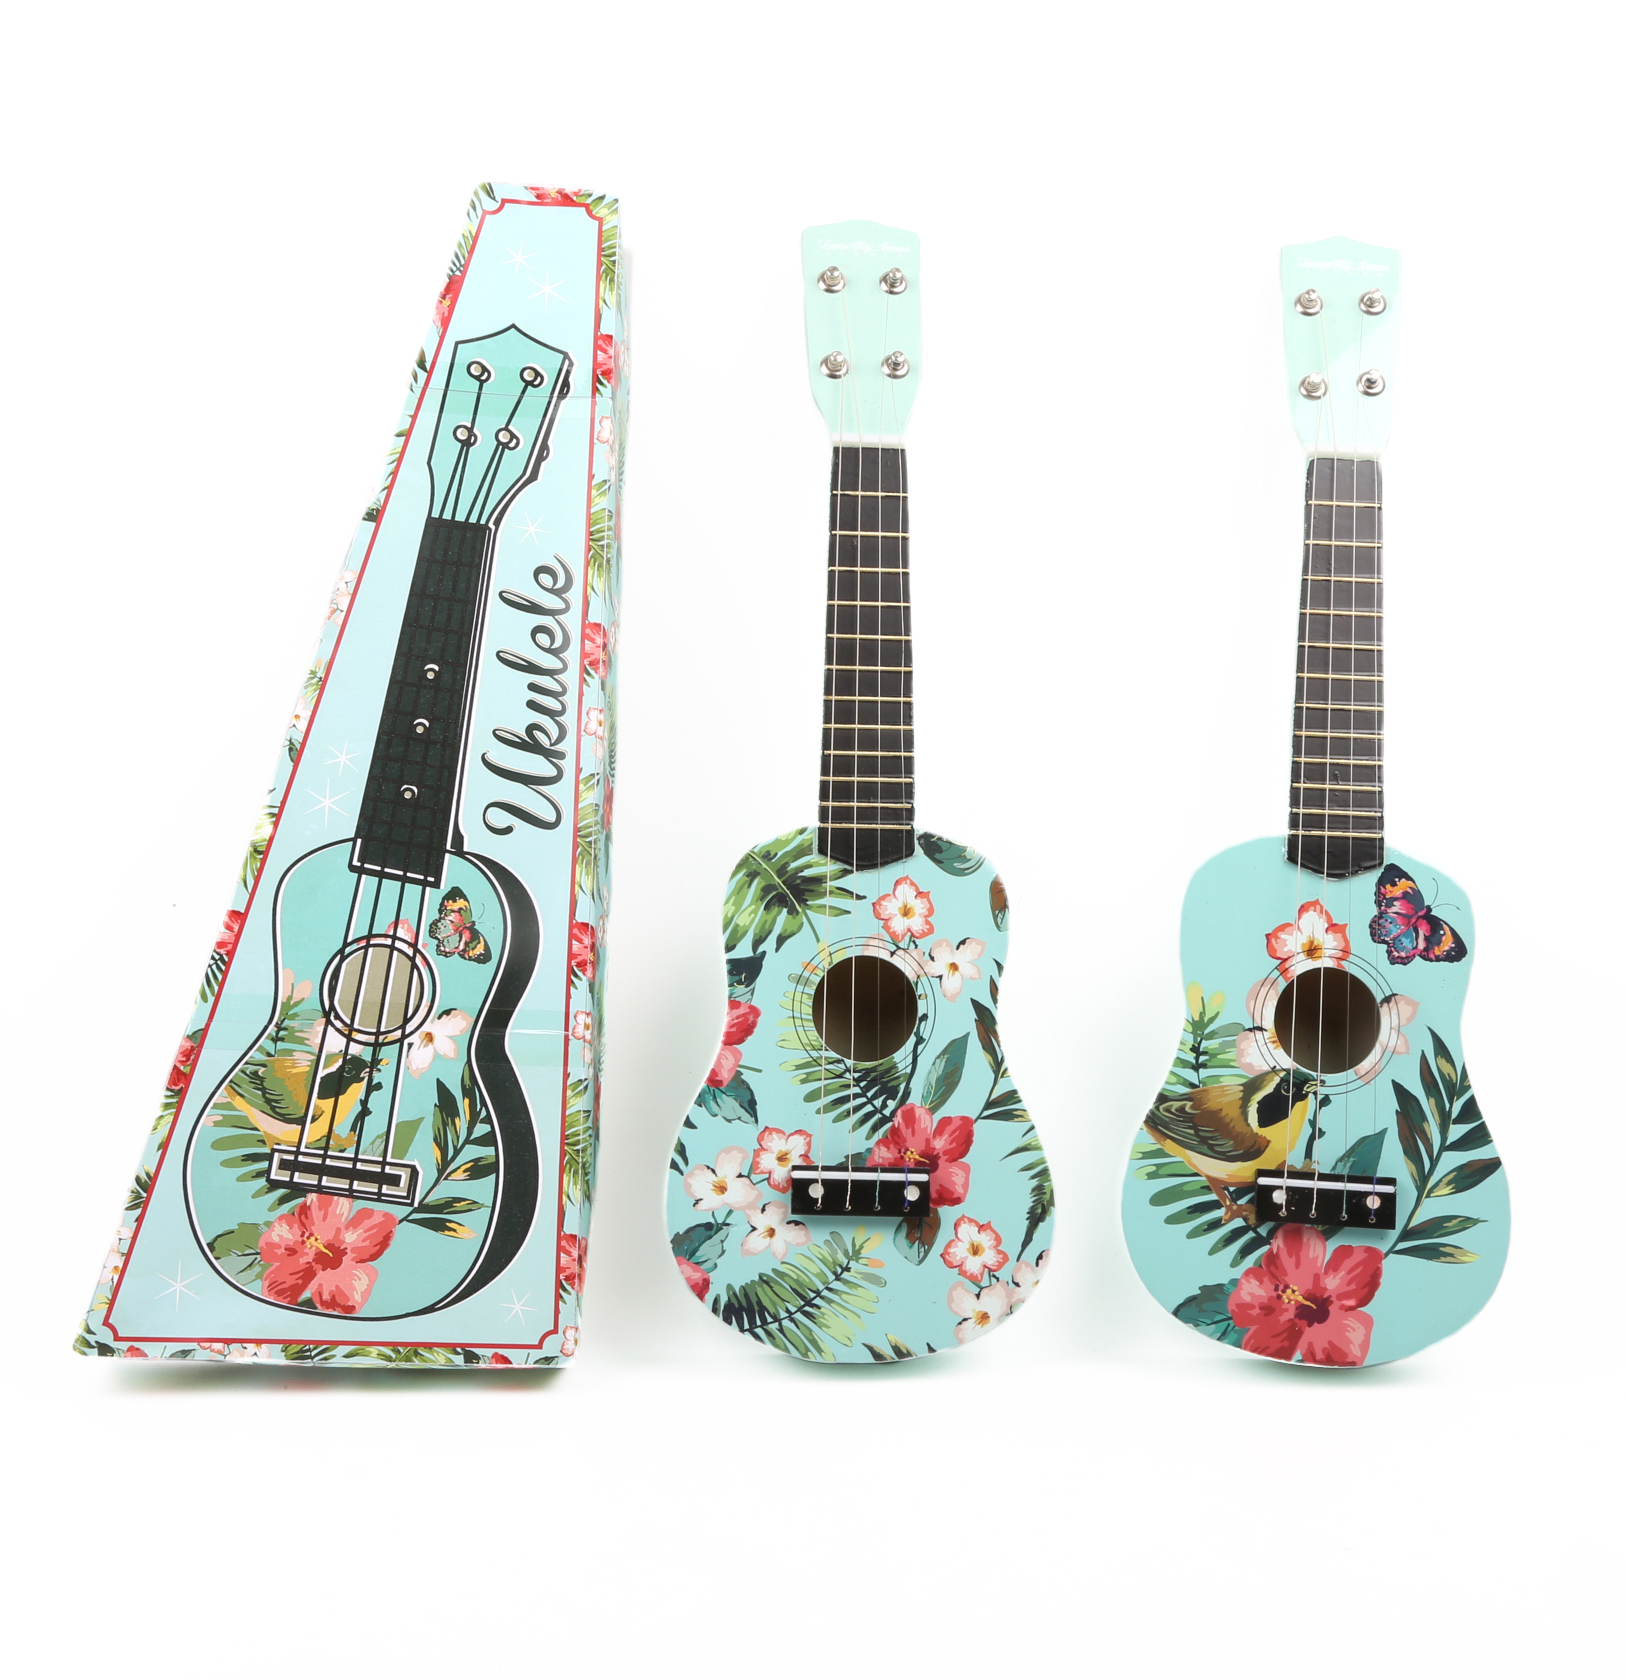 Summer festival ukulele ebay for Decoration ukulele